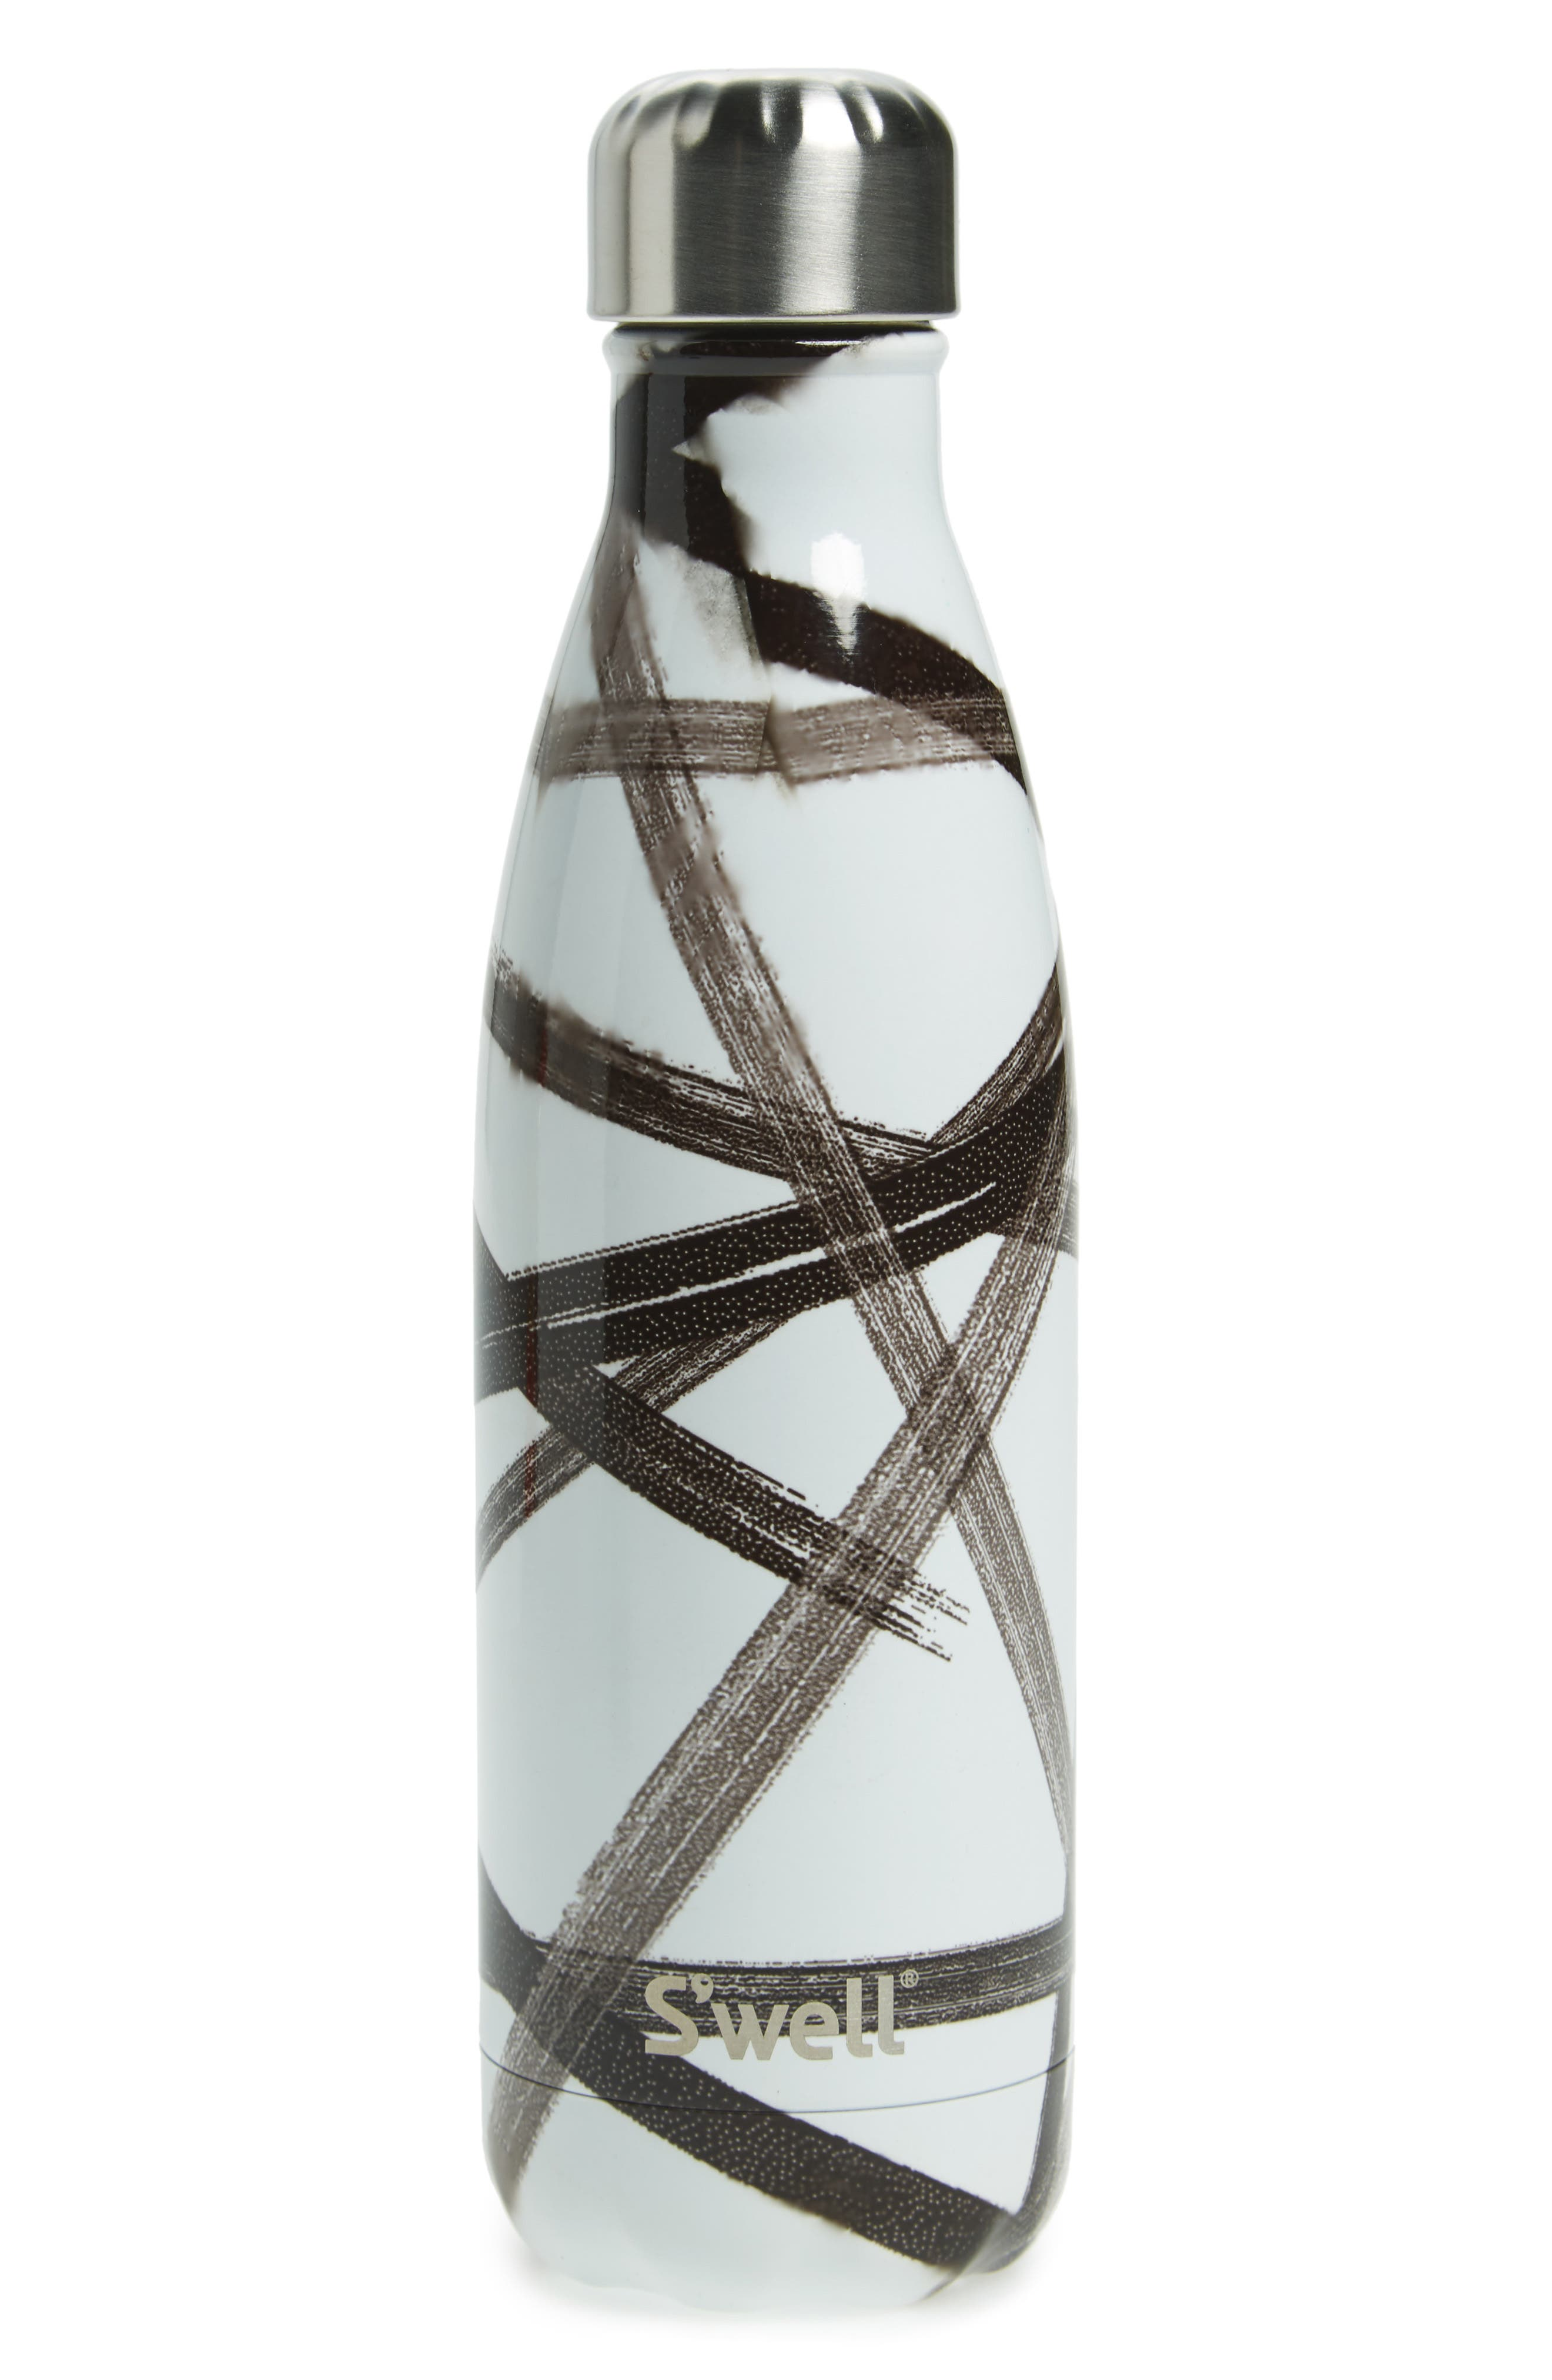 Black Ribbon Insulated Stainless Steel Water Bottle,                             Main thumbnail 1, color,                             119